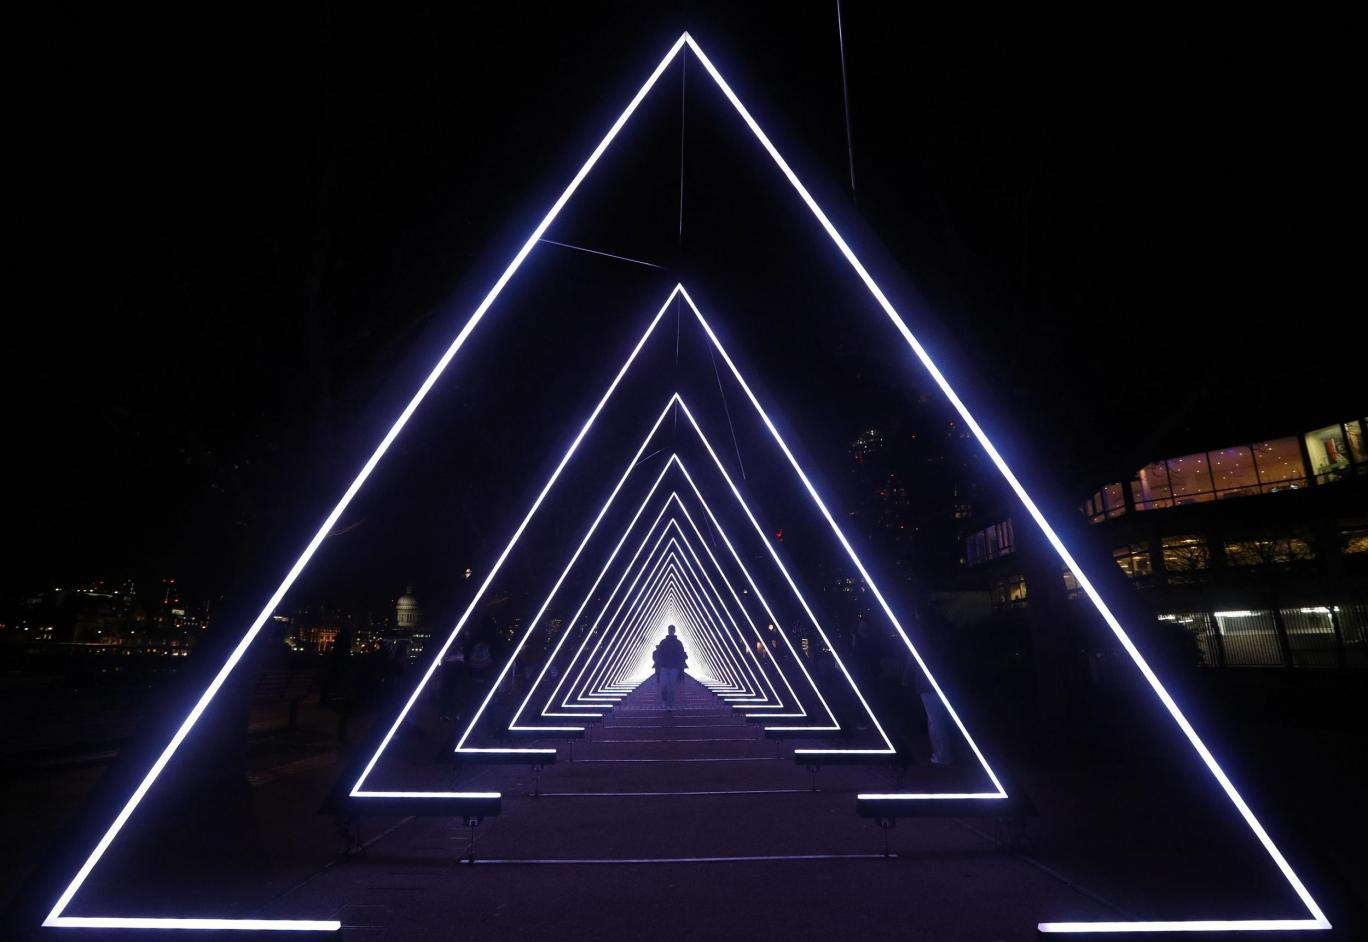 Pyramids of light over a walkway